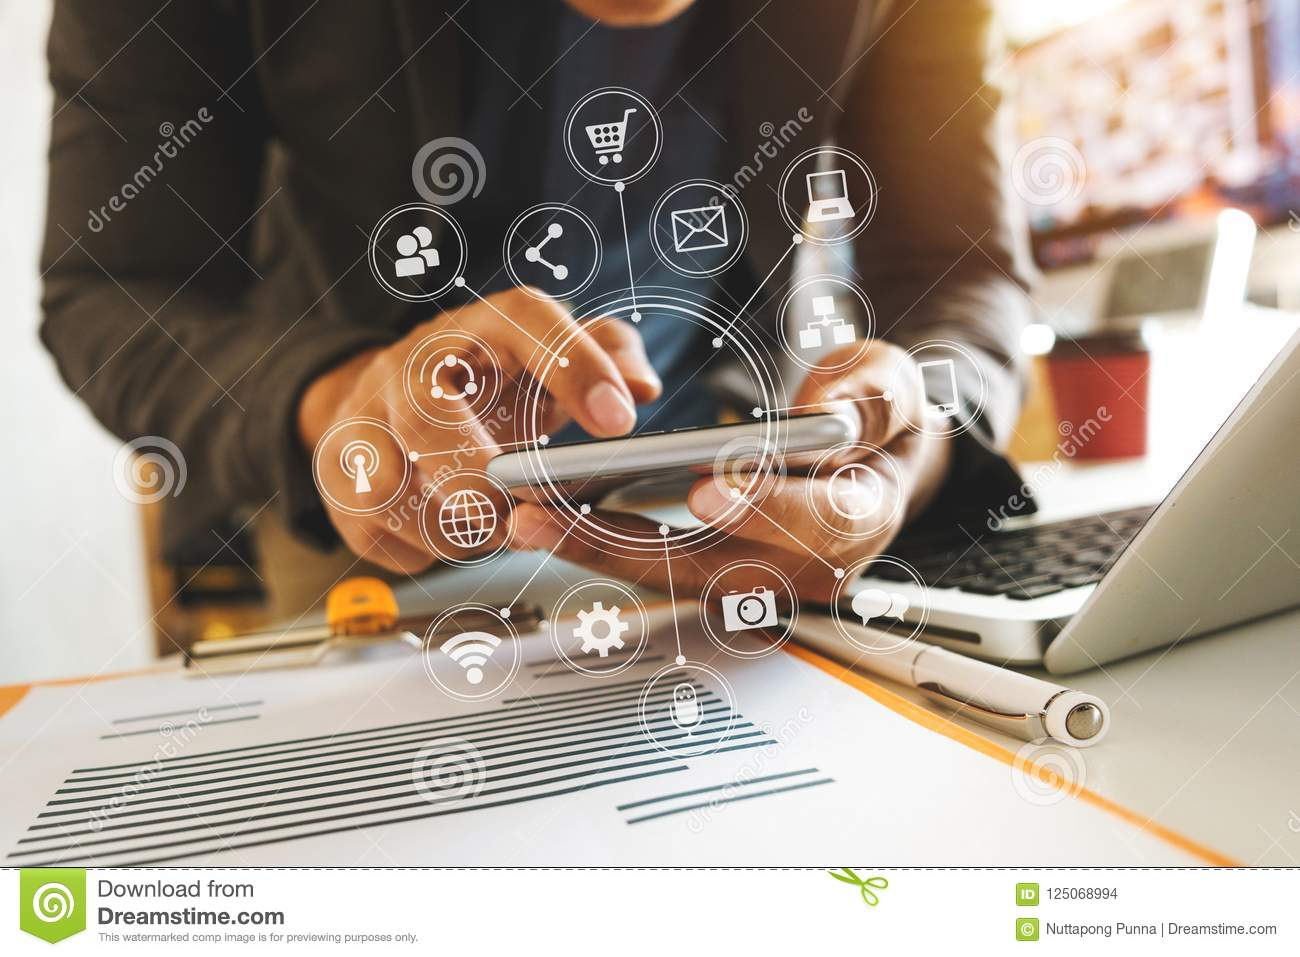 Business man hand working with laptop computer, tablet and smart phone